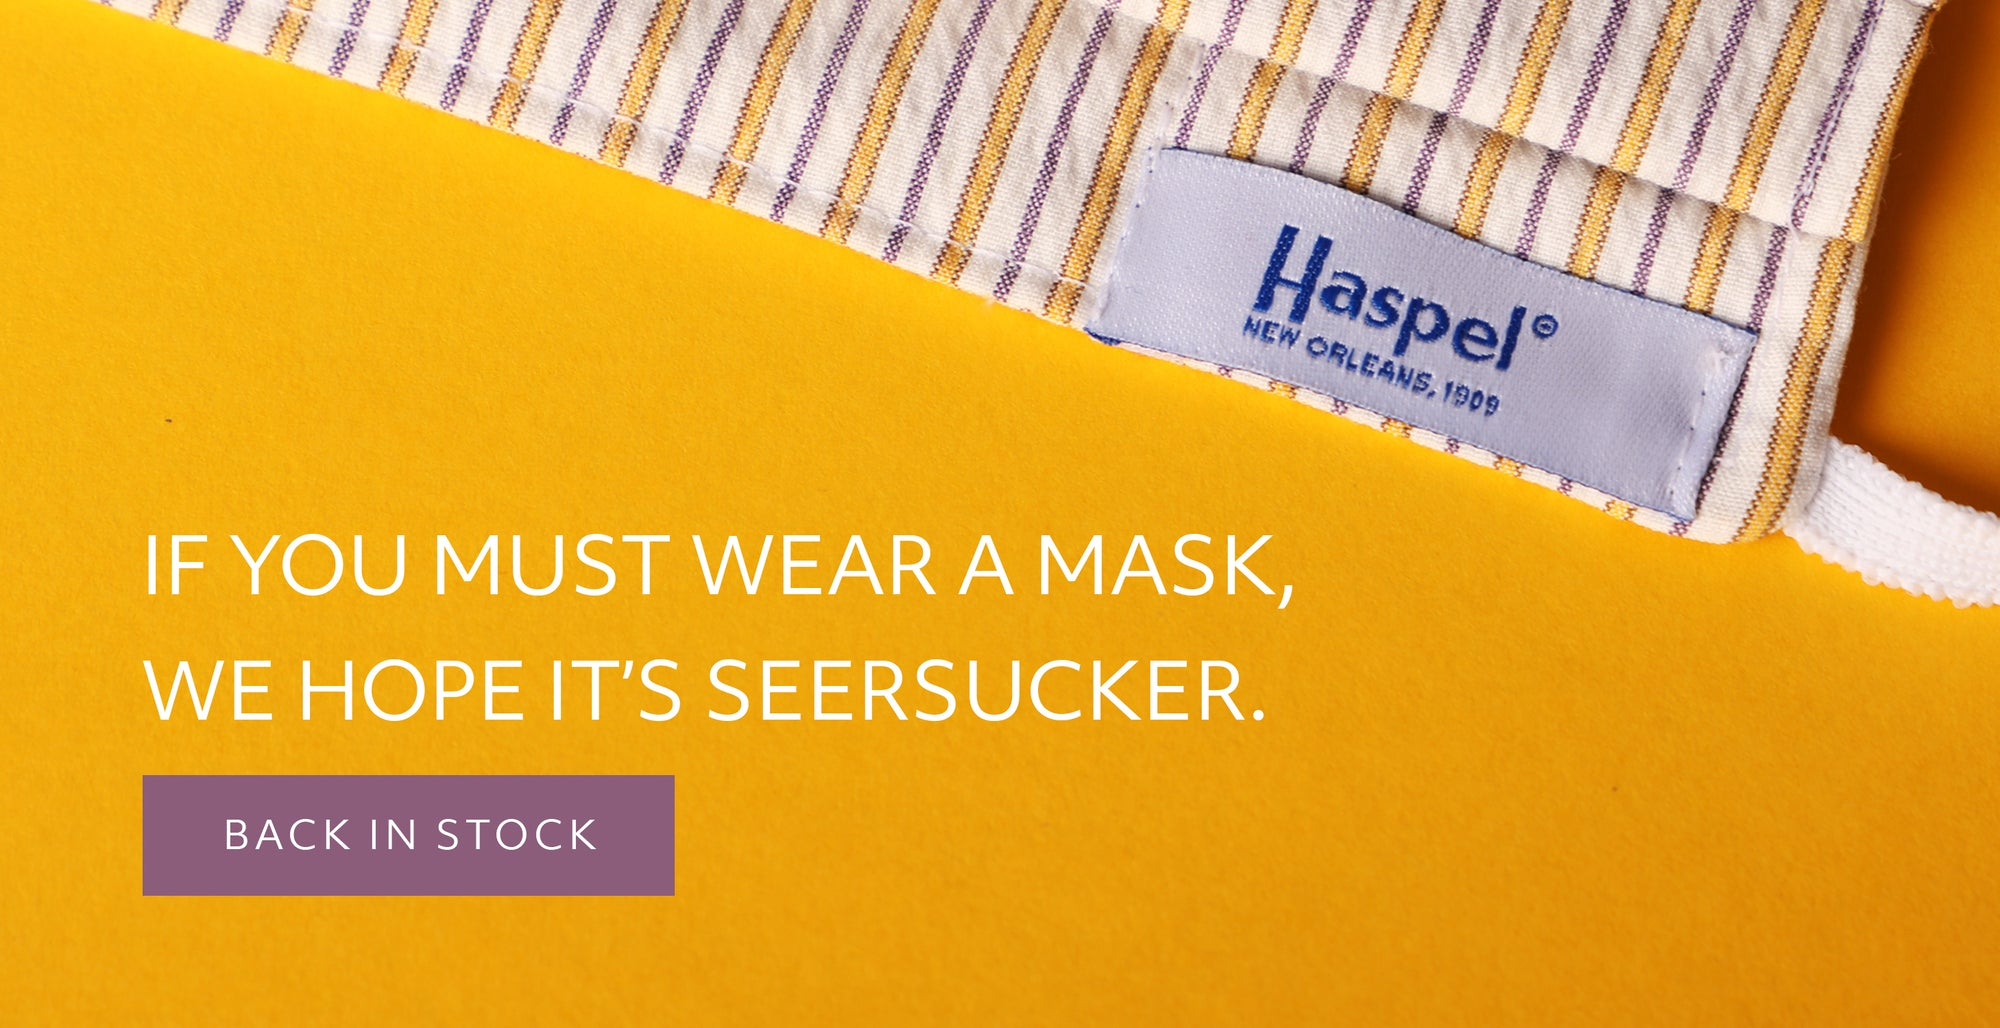 Seersucker Face Mask Accessories Haspel